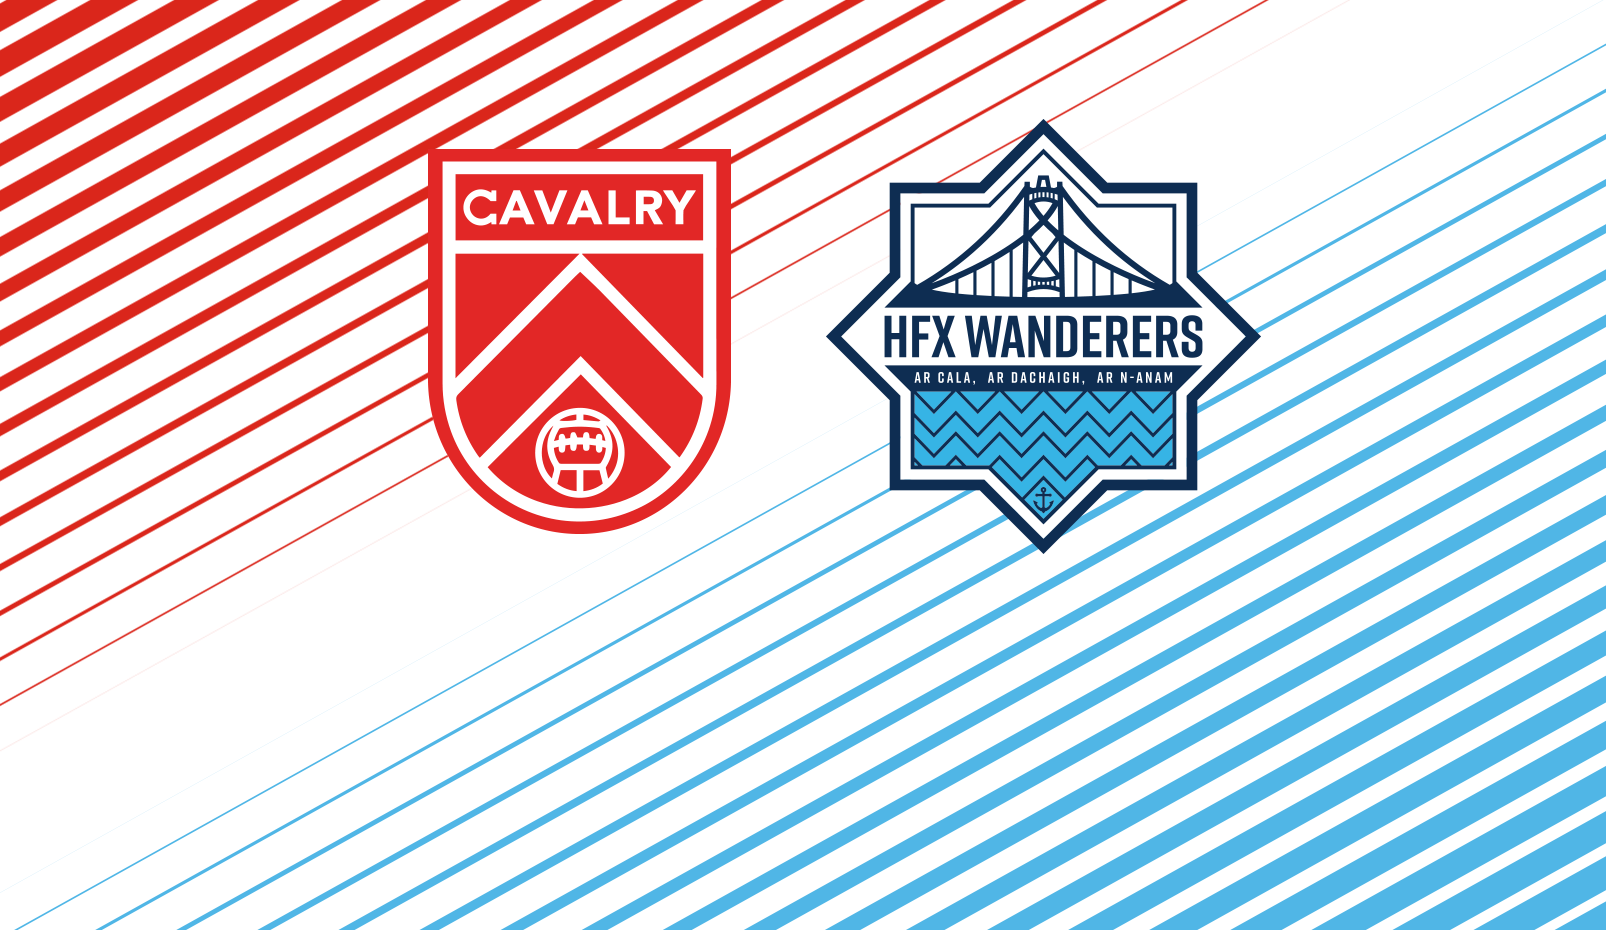 PREVIEW: Cavalry FC vs. HFX Wanderers FC - Match #87